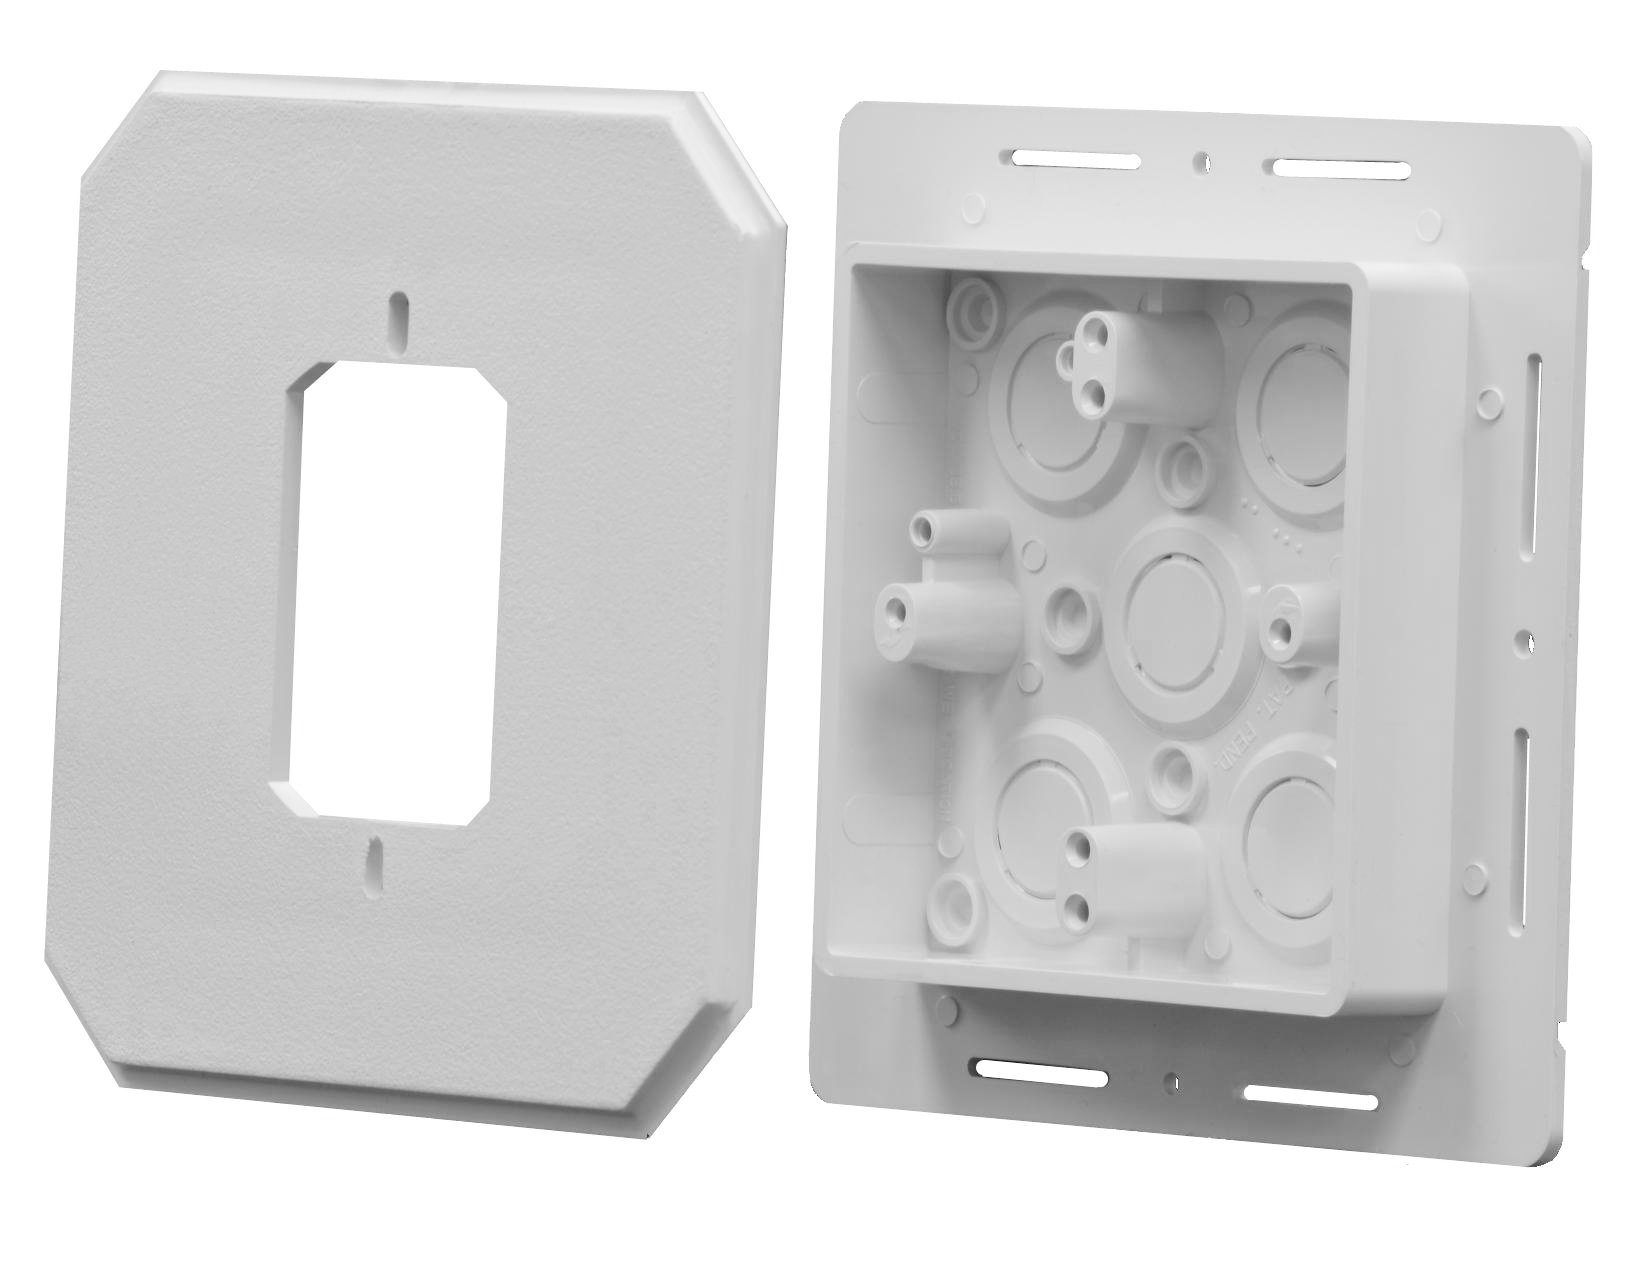 Arlington Industries 8081F Siding Box Kit For Fixtures and Receptacles, Cover with Flanges, White, 25-Pack